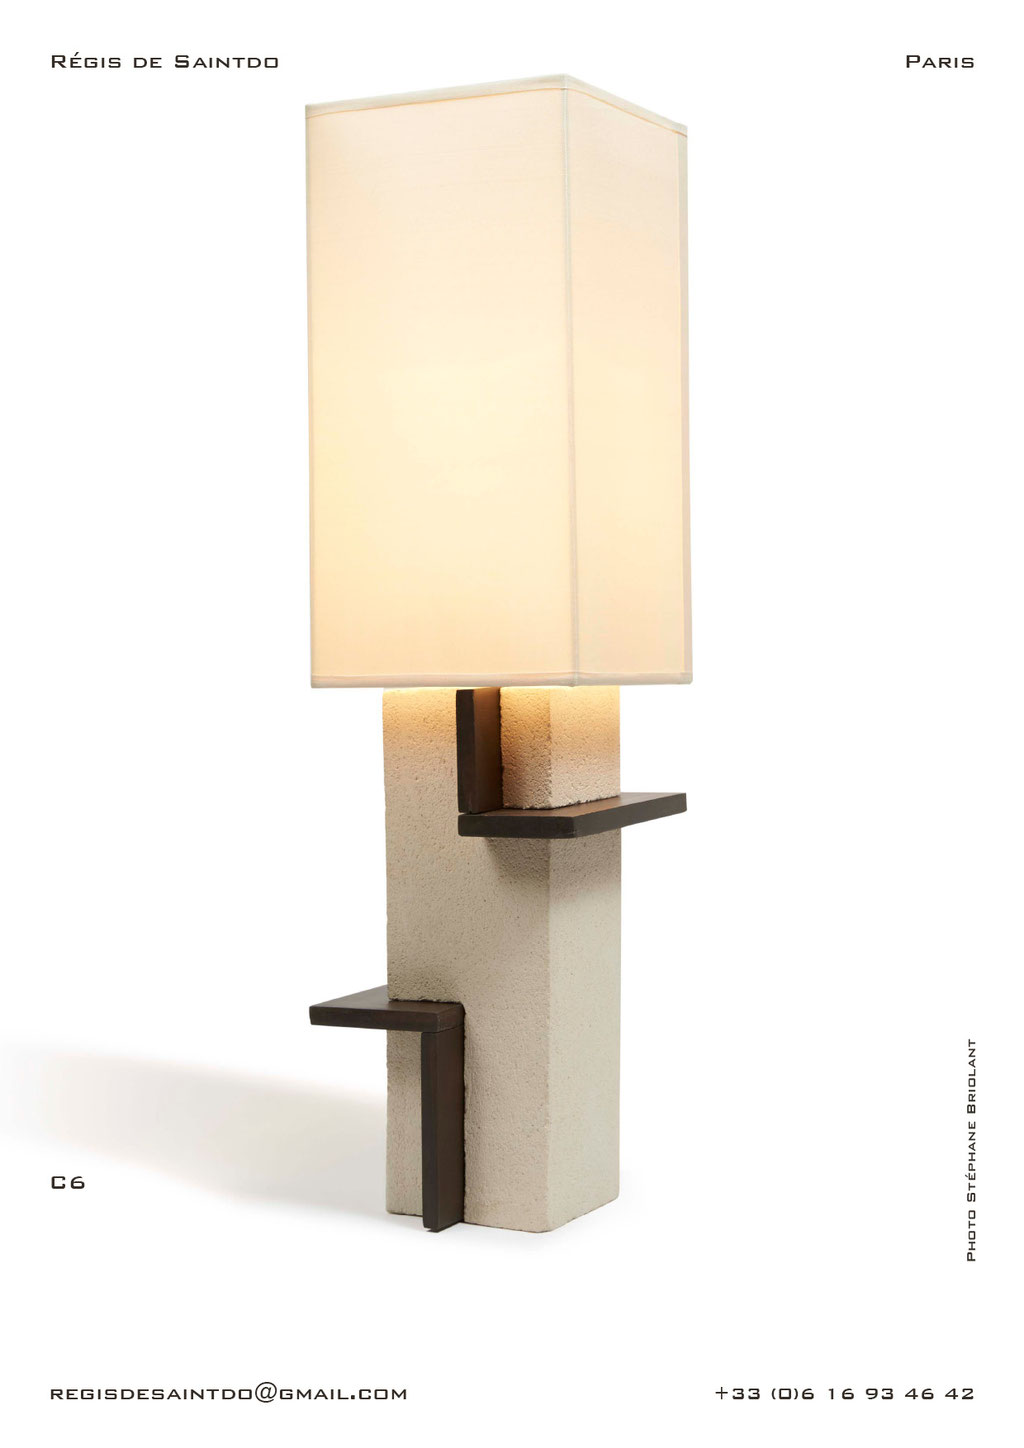 Lamp-C6-white-rough-brown-polished-handmade-unique